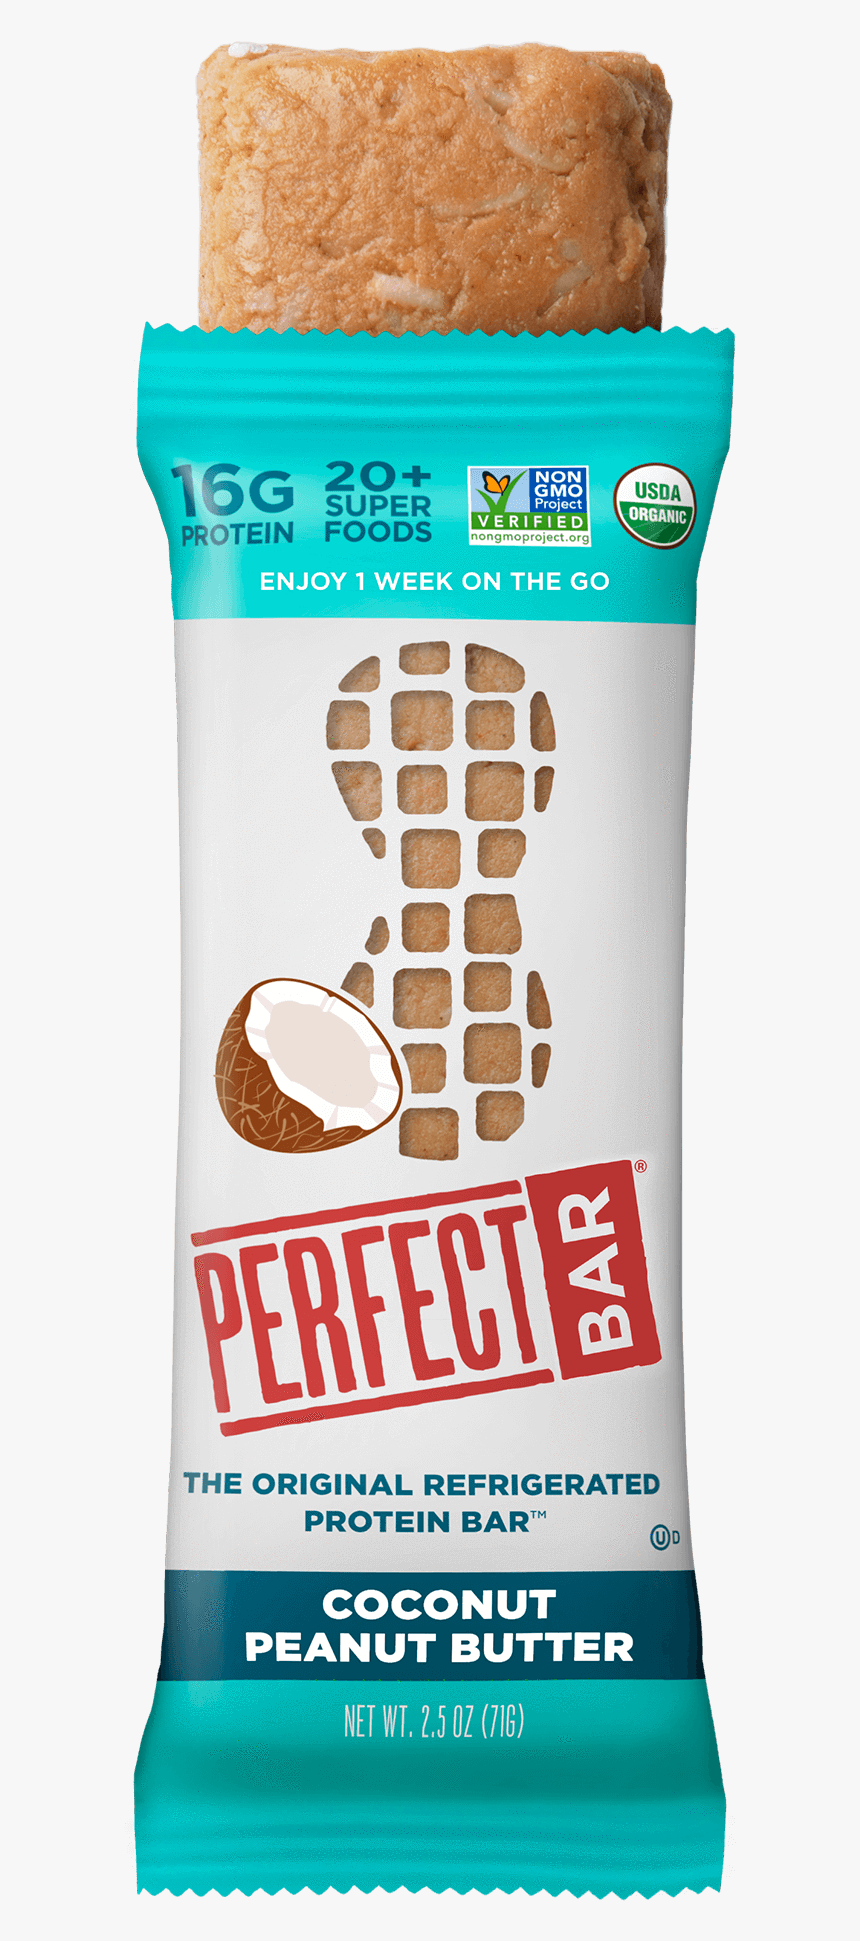 Perfect Bar Peanut Butter, HD Png Download, Free Download